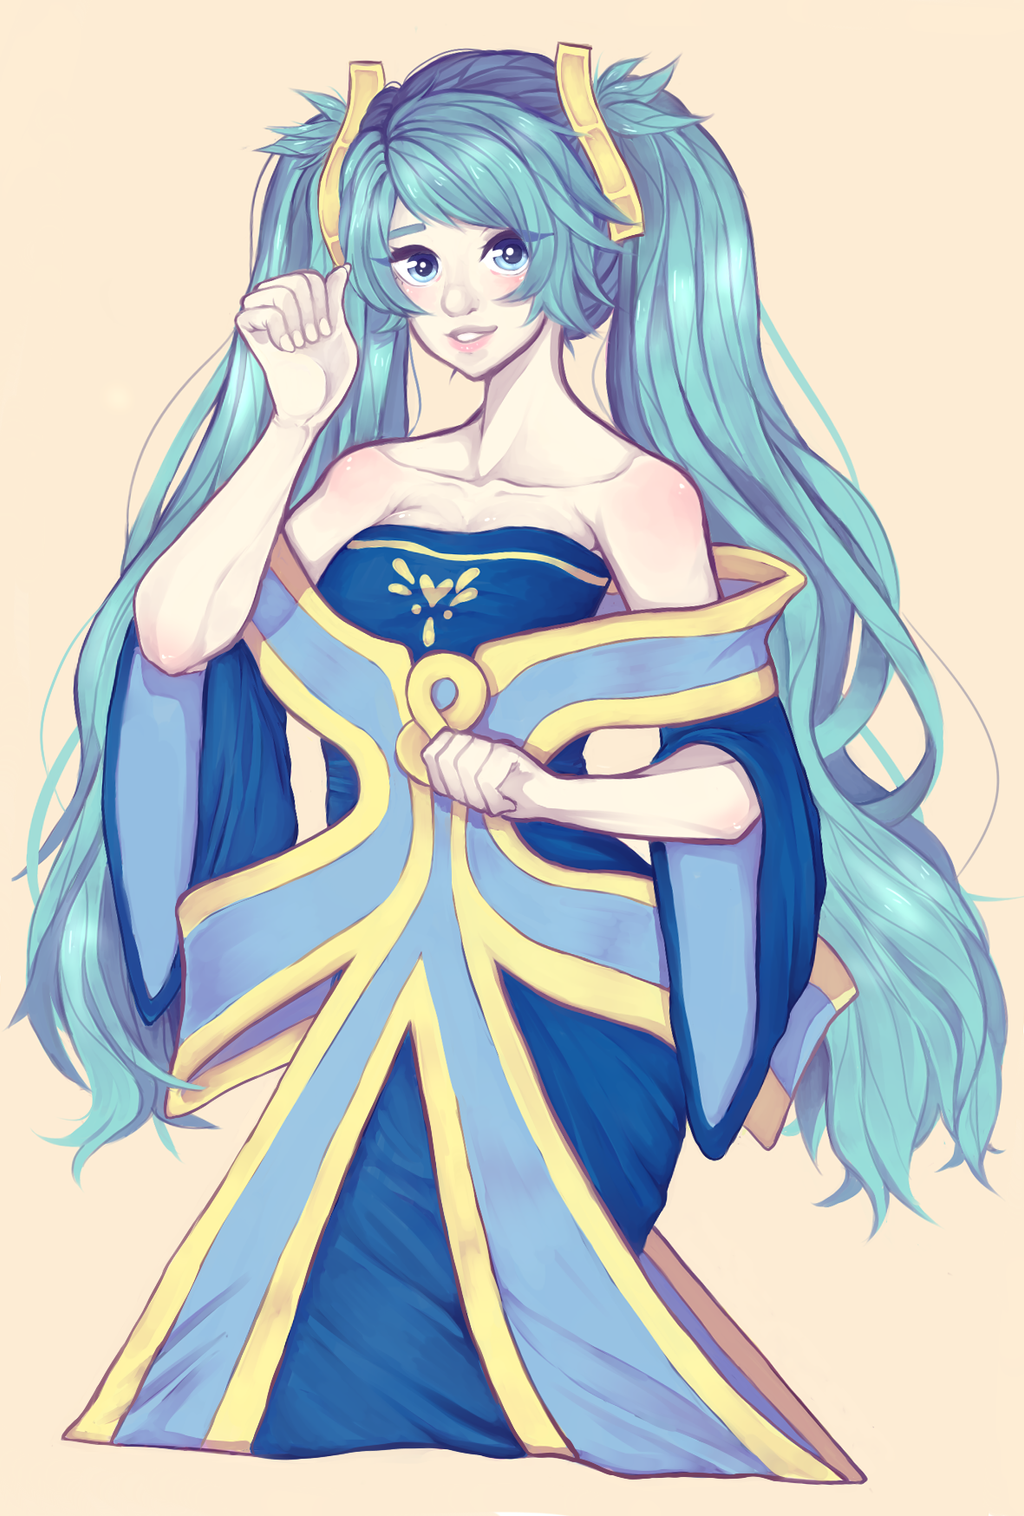 Lol -- Sona by houtani